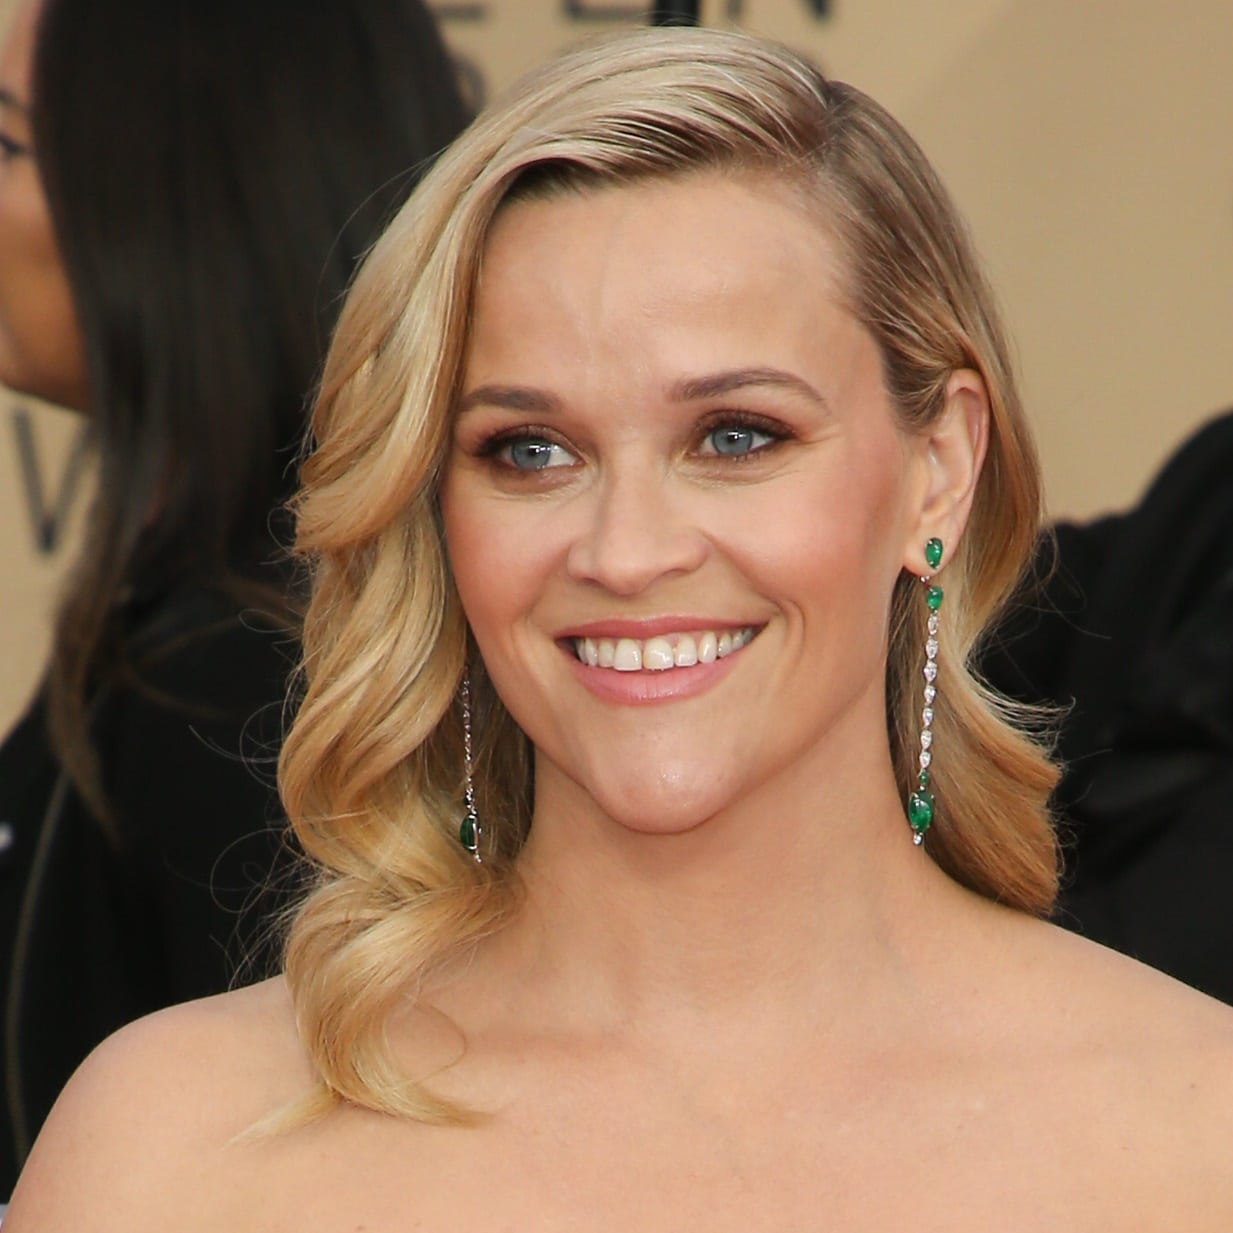 Reese Witherspoon showing off her striking Gismondi 1754 drop earrings